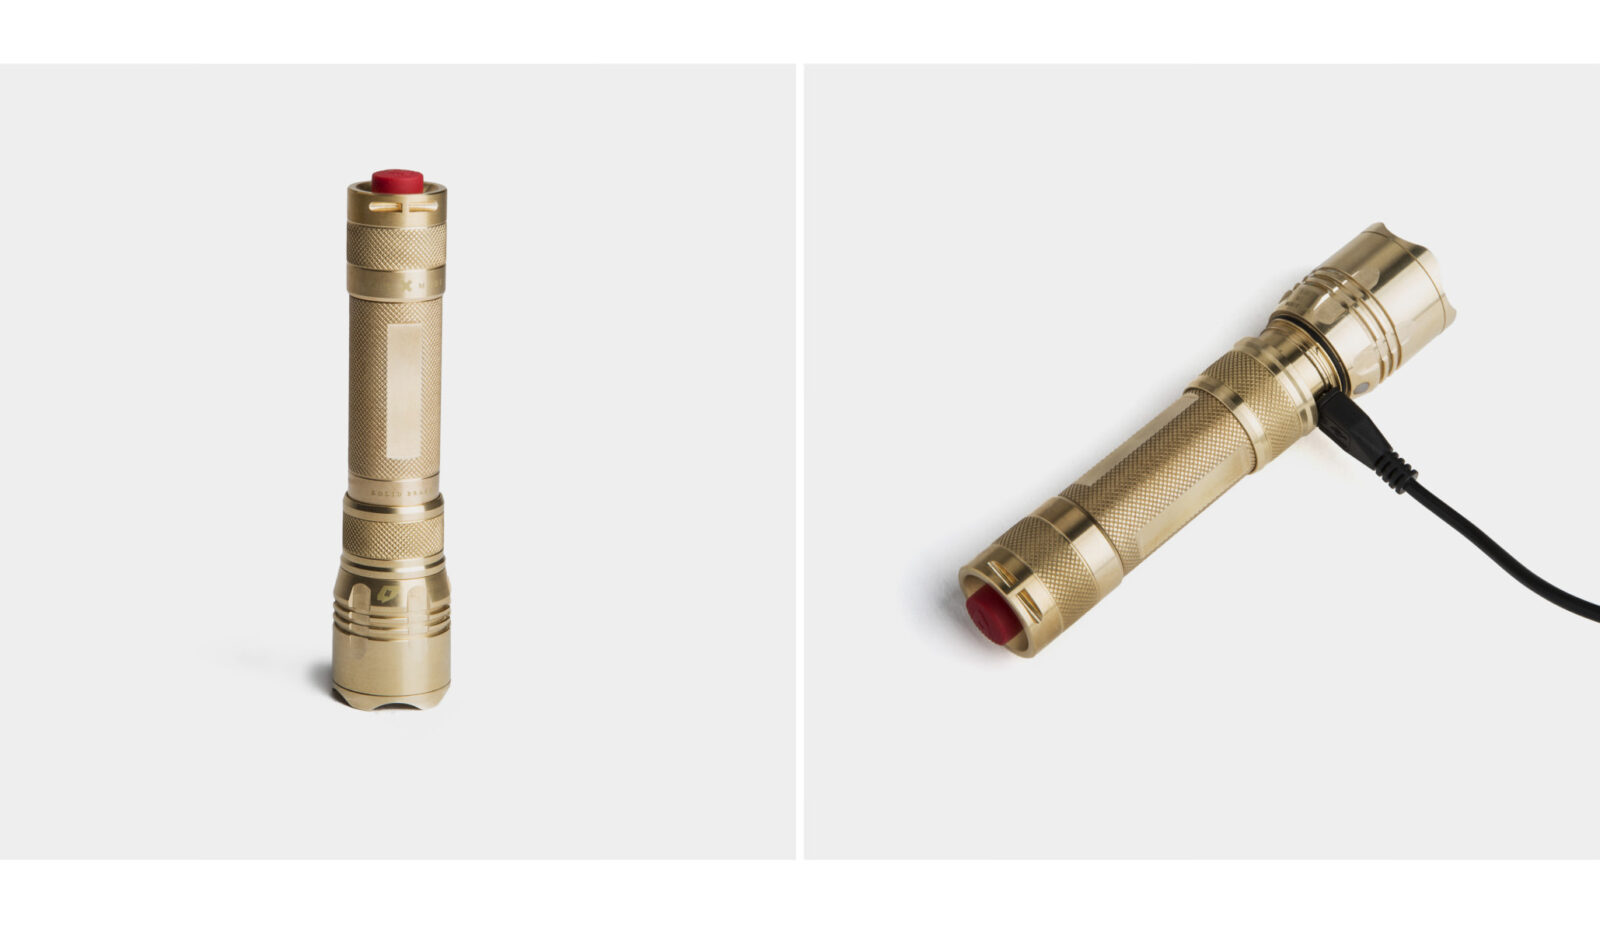 Rechargeable Brass Flashlight MMR X Hero. 6 1600x933 - Rechargeable Brass Flashlight